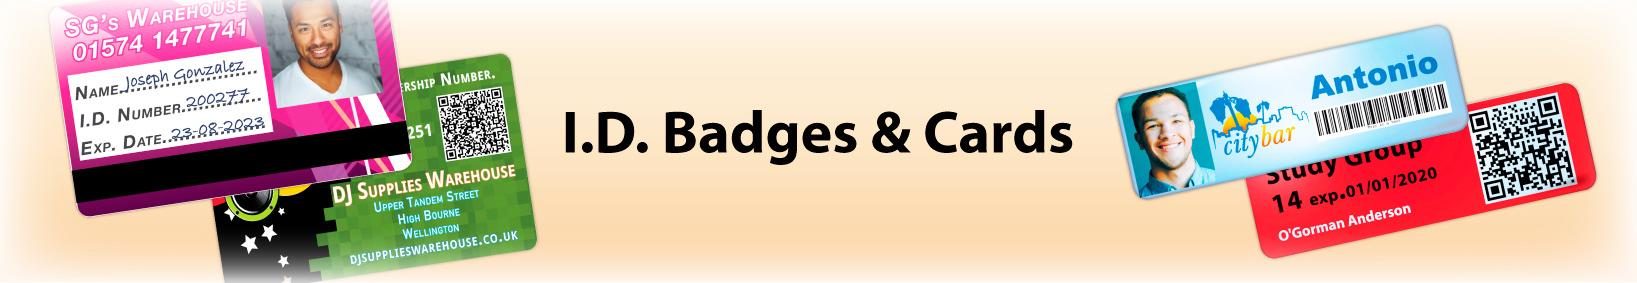 I.D. Badges & Cards